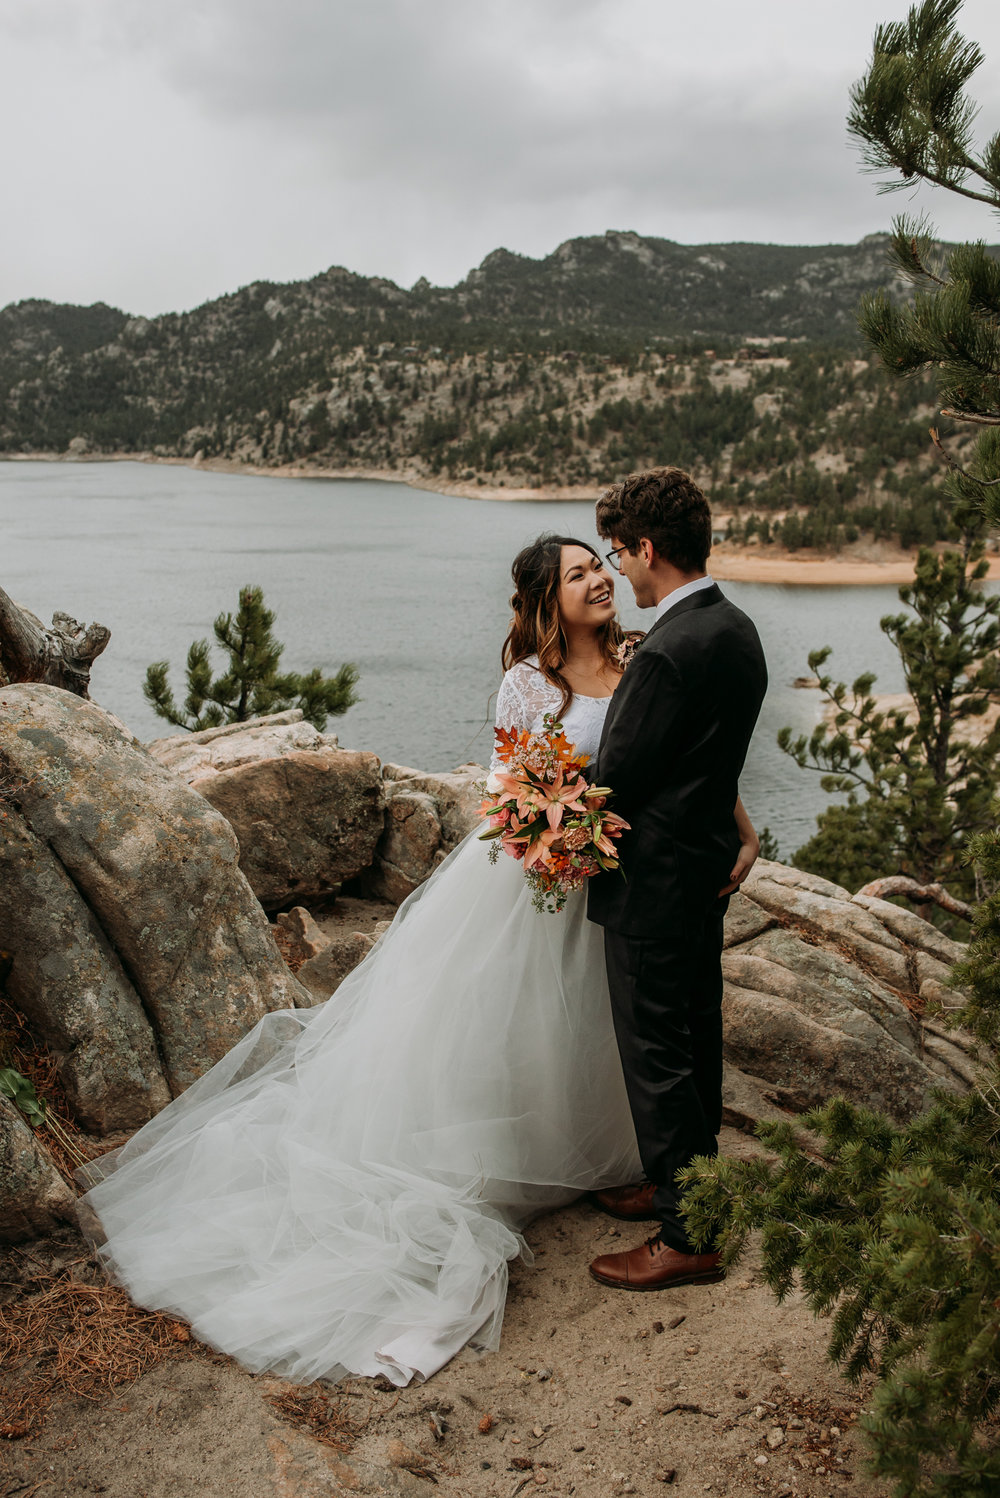 This gorgeous spot overlooking Gross Reservior is perfect for an elopement wedding.